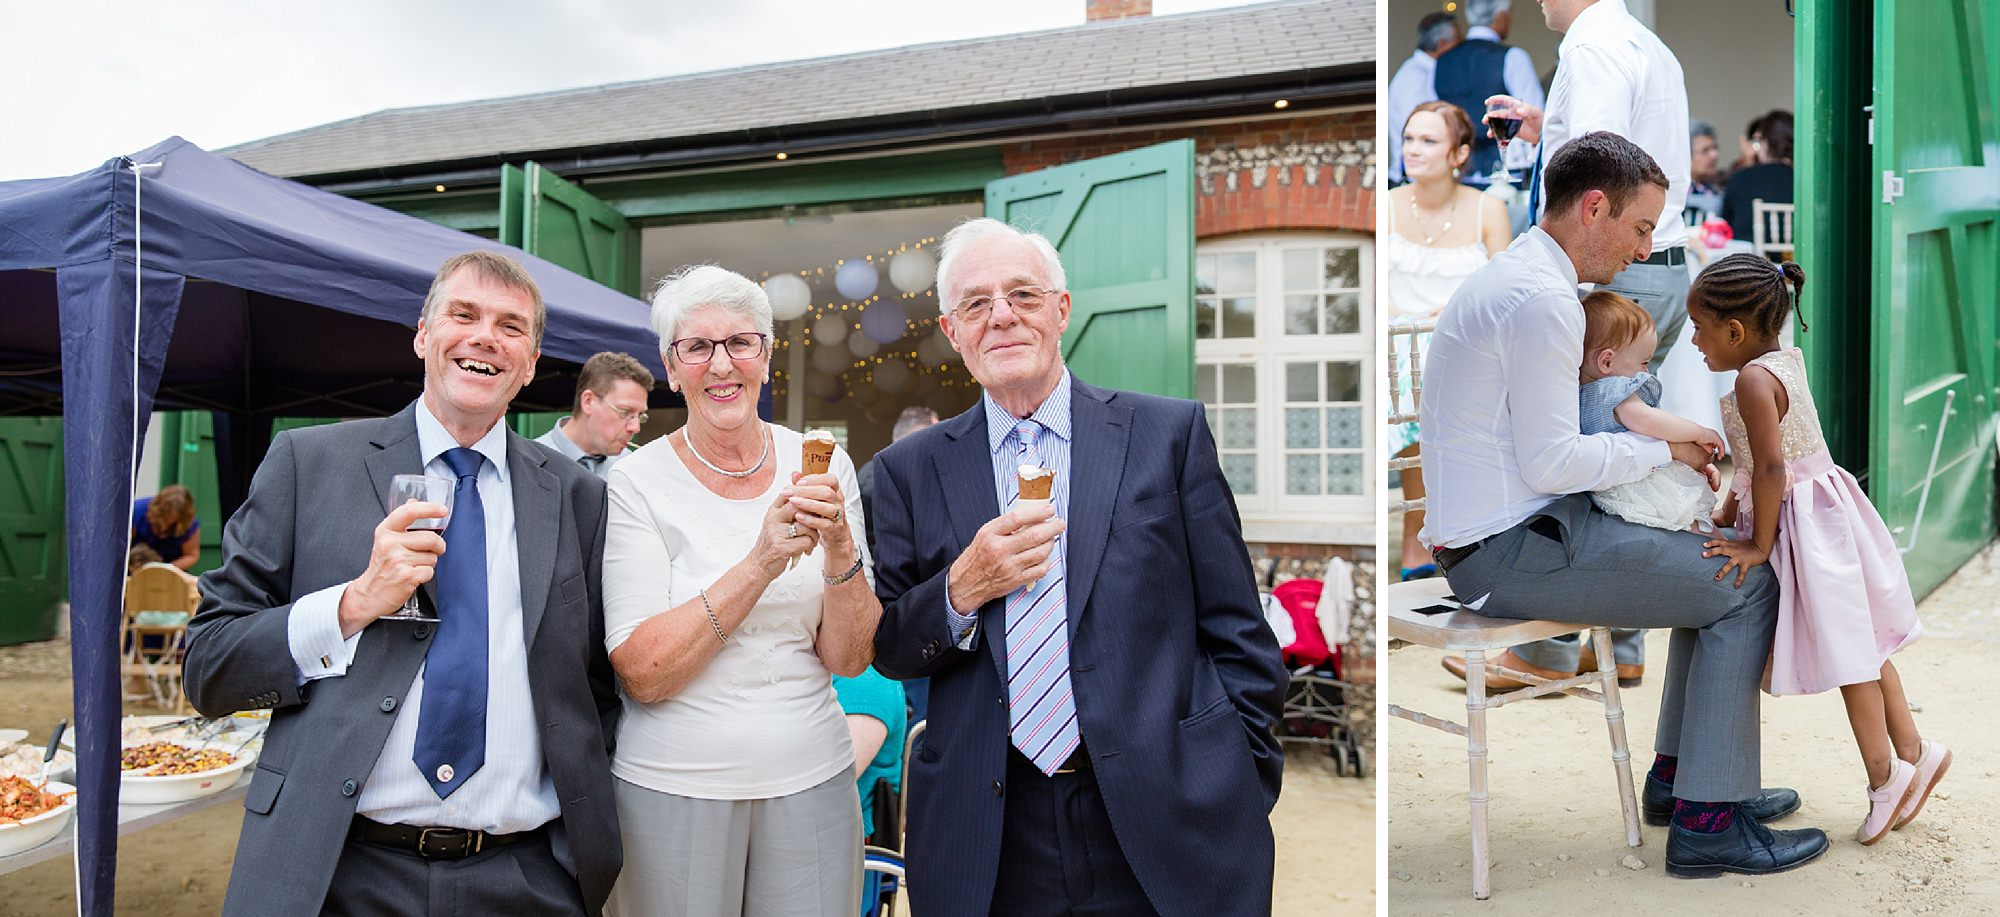 Bignor Park wedding photography guests with ice cream